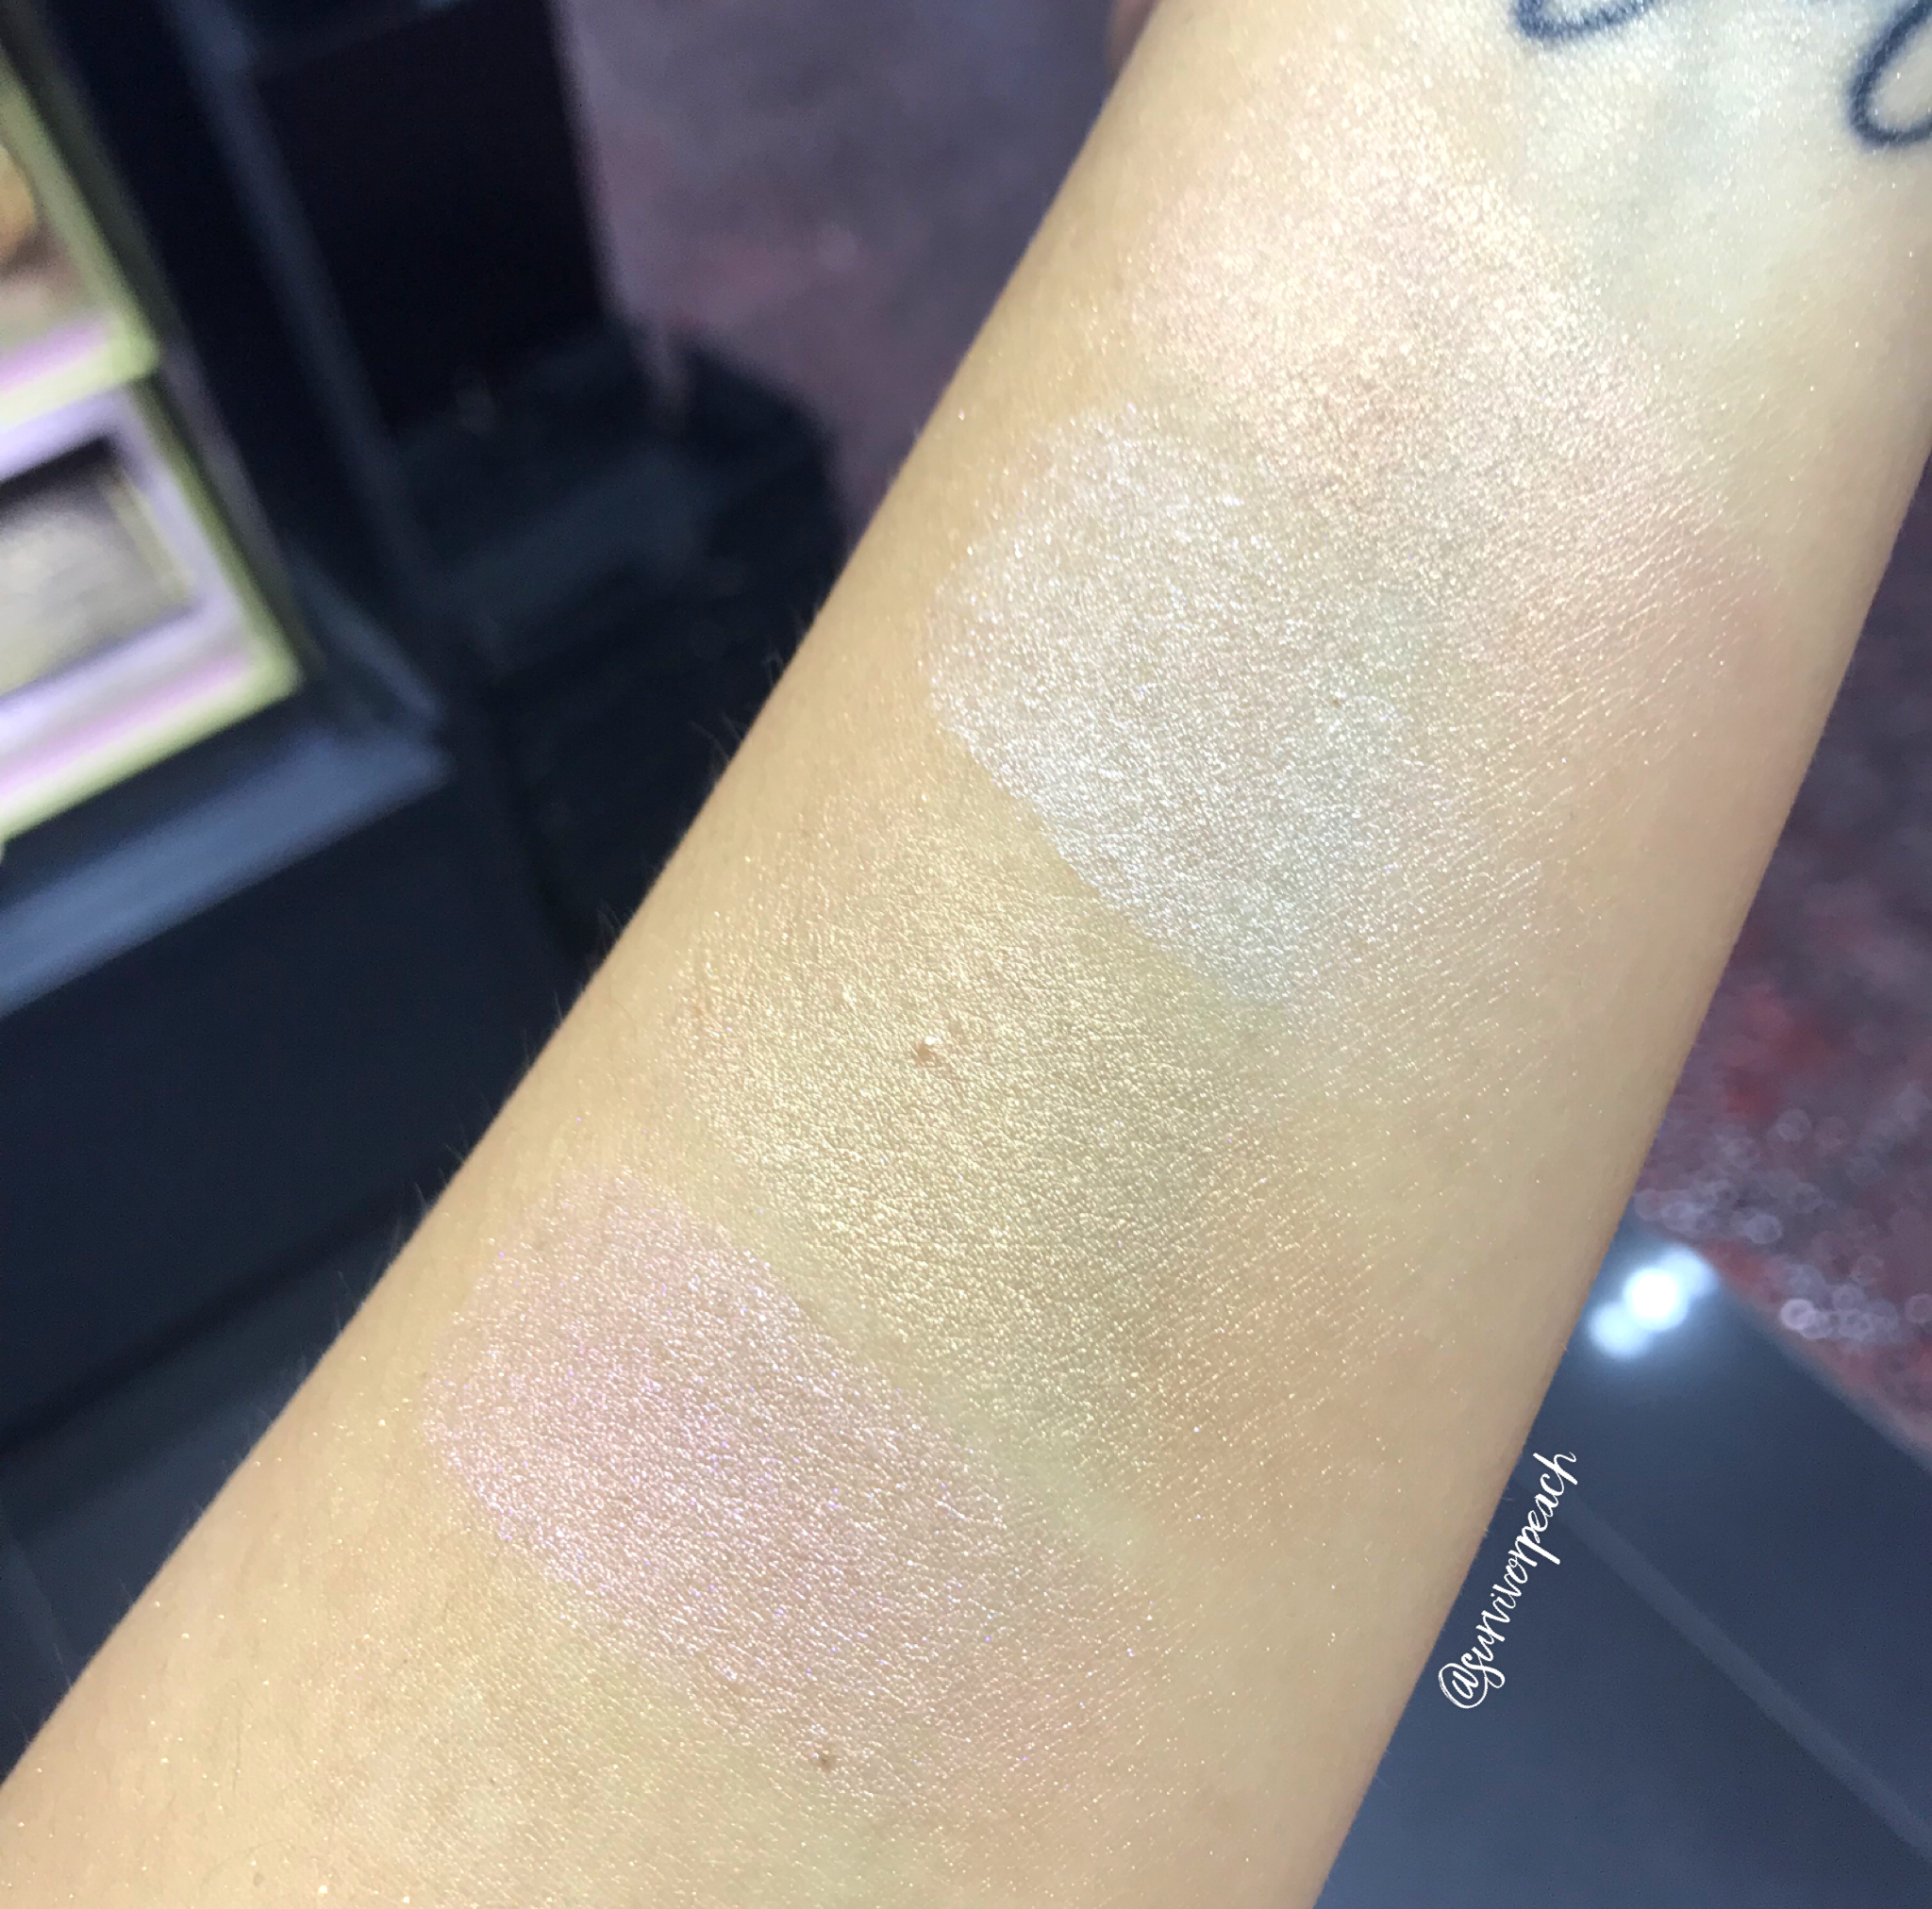 Stila Heavenly Hue Highlighter swatches - Incandescence, Opulence, Brilliance, Luminescence